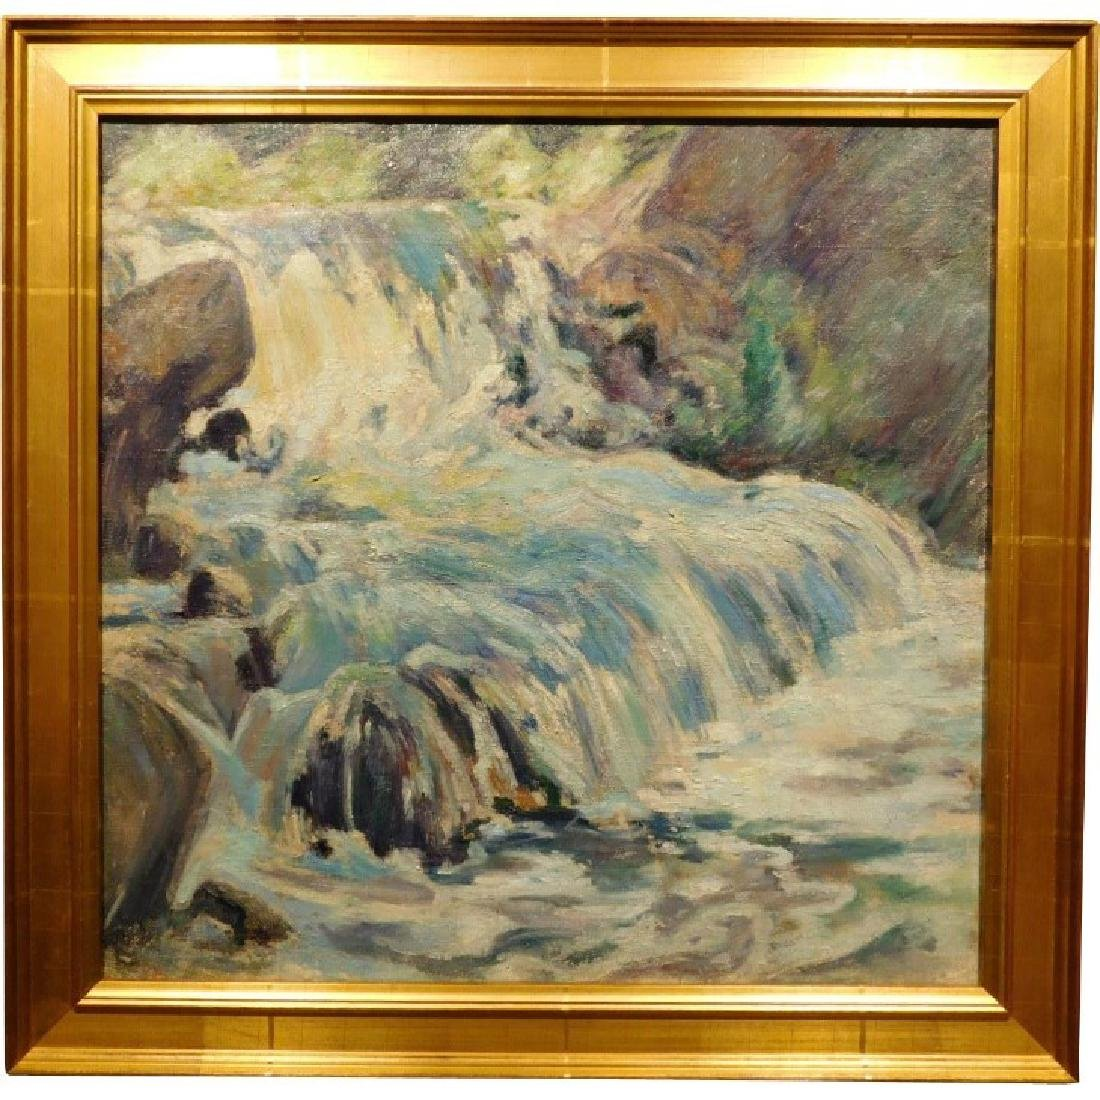 E.A.Barck, Waterfall oil painting c. 1940